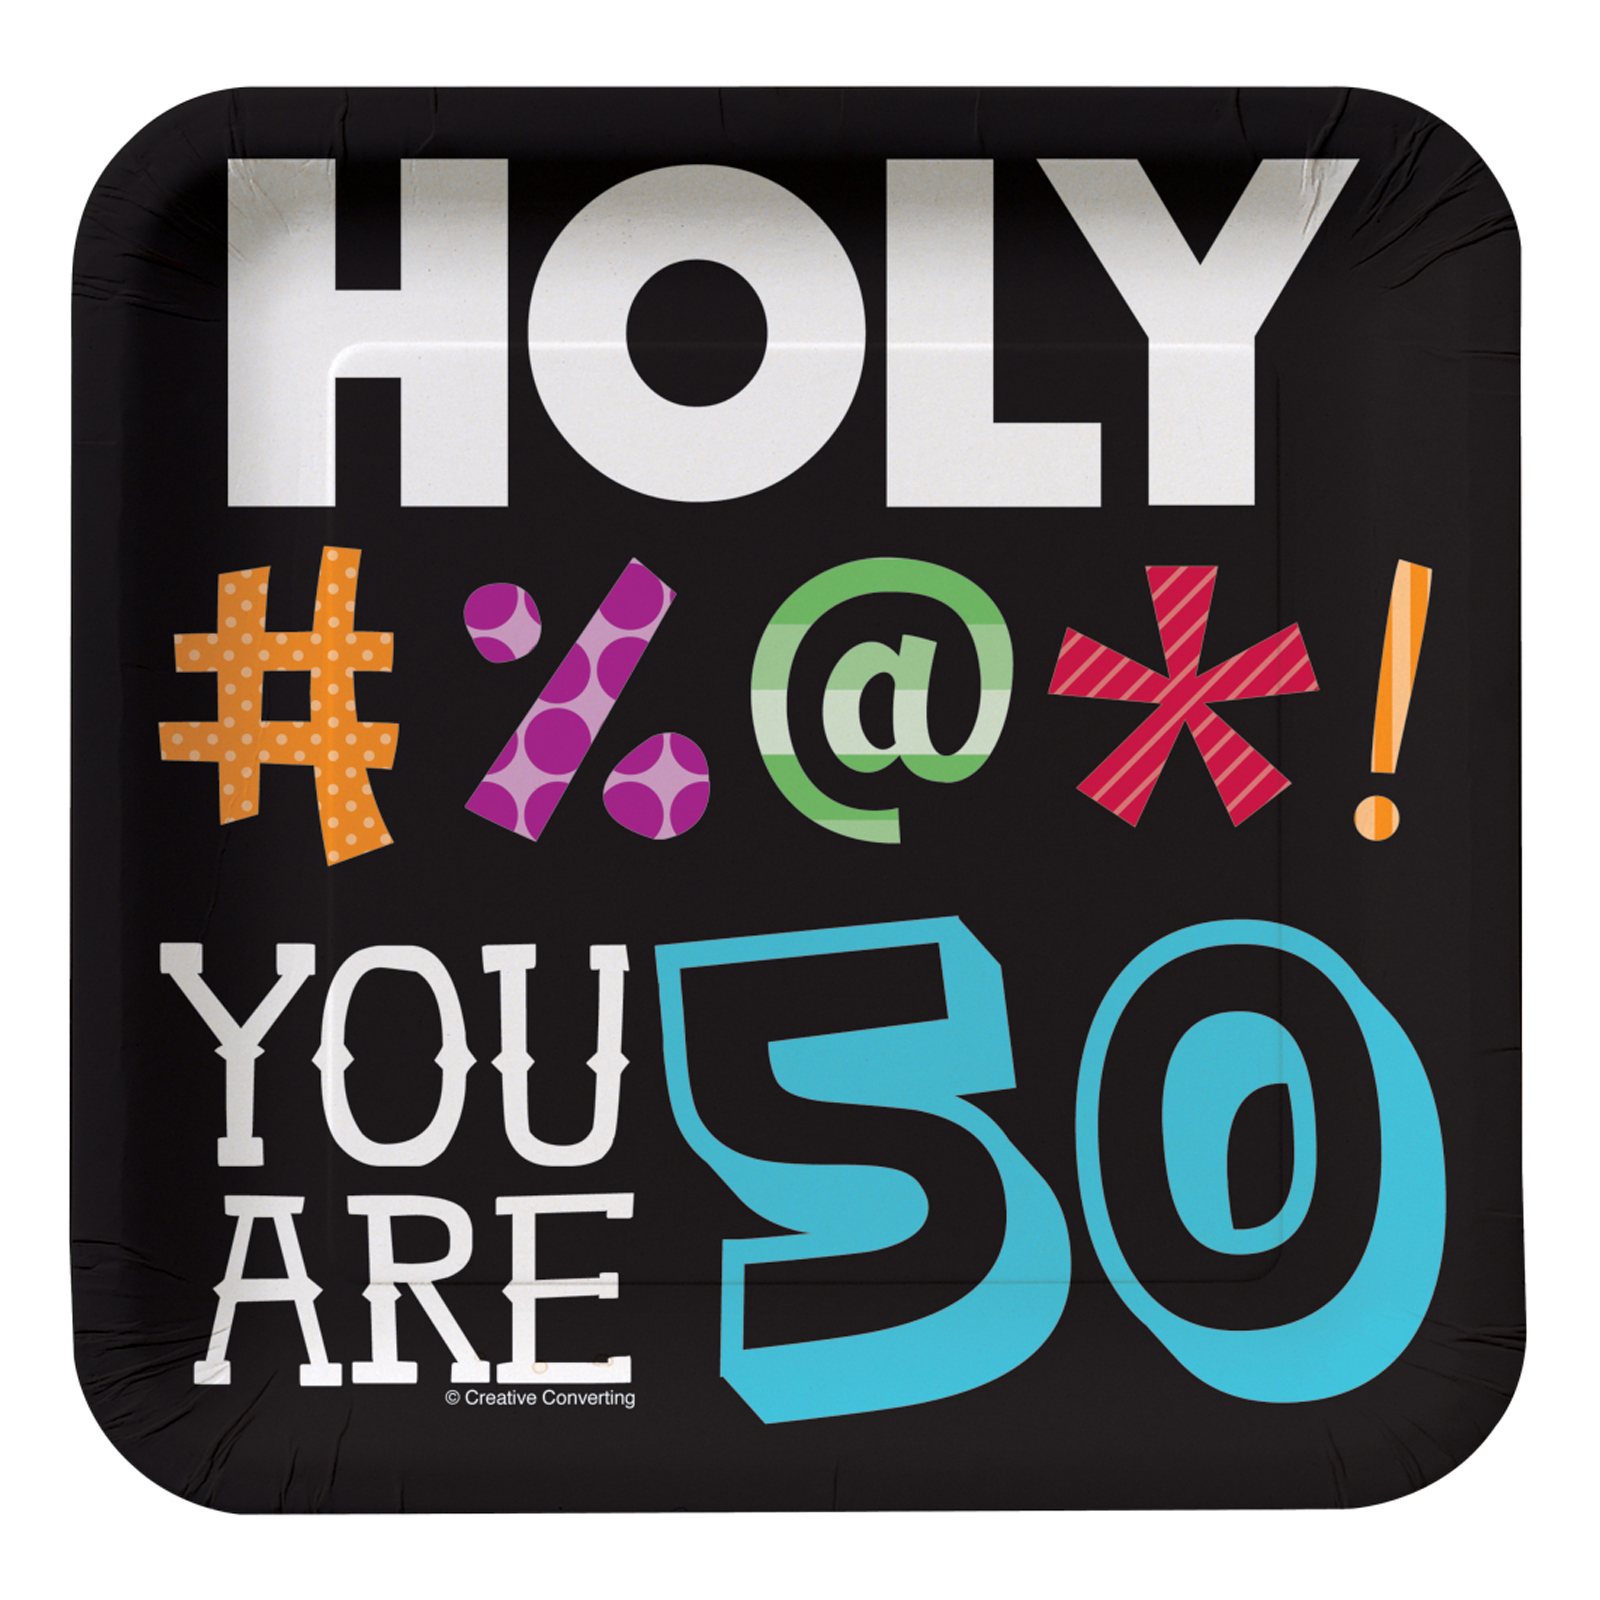 Quotes 50th Birthday: 50th Birthday Quotes And Sayings. QuotesGram